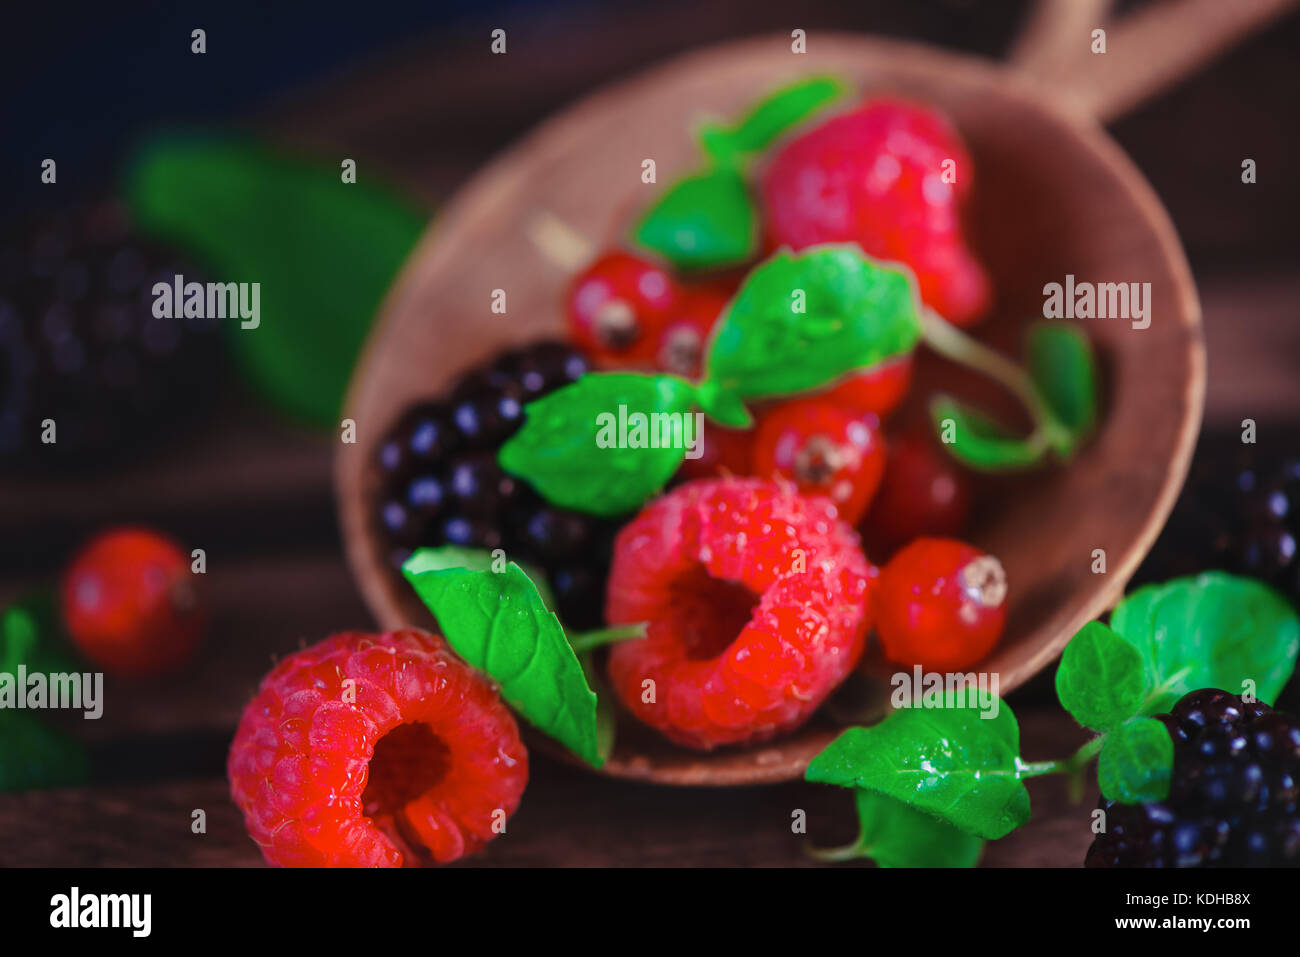 Close-up of tiny wooden bowl with fresh raspberries, blueberries, currant and mint leaves. Dark food photography - Stock Image